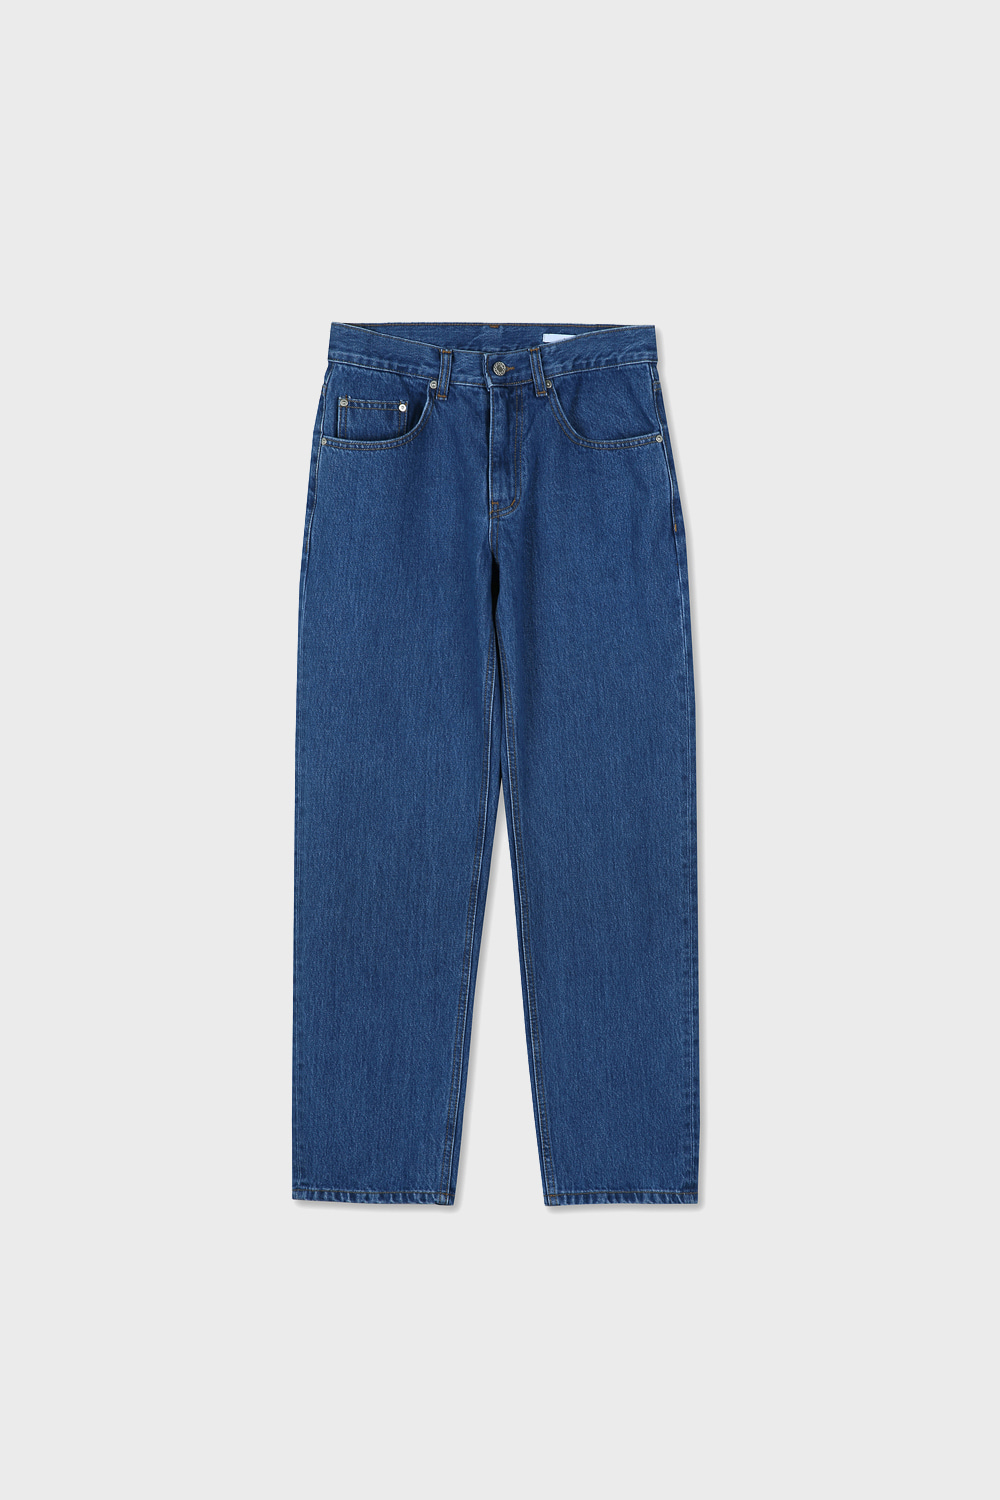 FIRST EDITION DENIM PANTS (FRENCH BLUE)